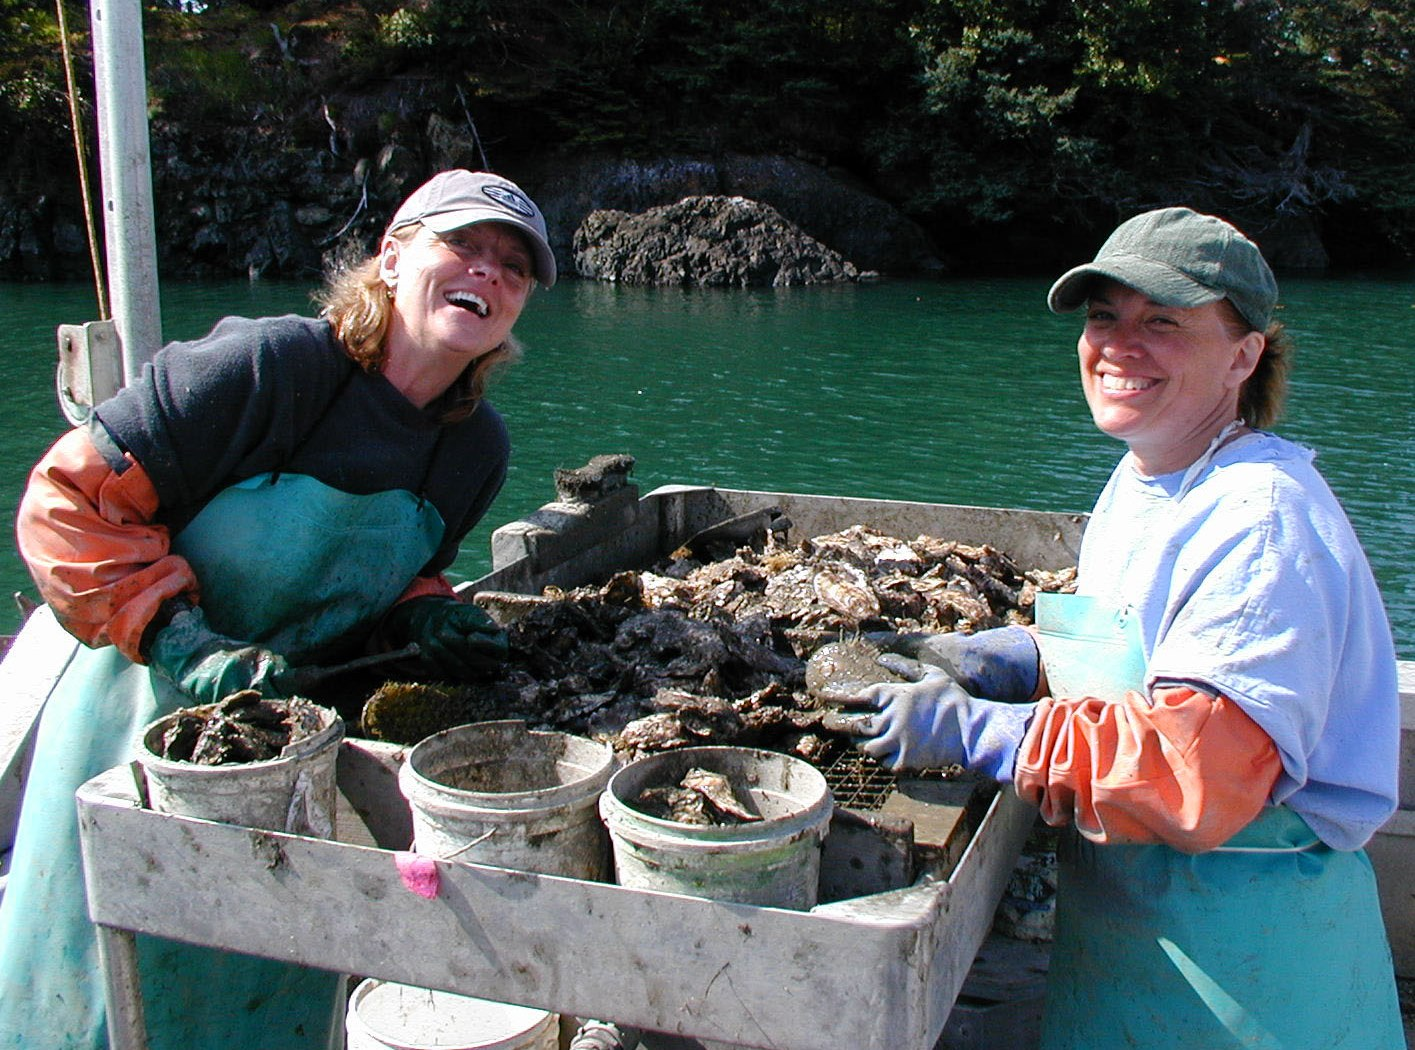 Brenda Bryan, left, and Jackie Whitmore clean shellfish at the Moss Island Oyster Farm in Peterson Bay across from Homer. (Photo by Ron Bader/Moss Island Oyster Farm)